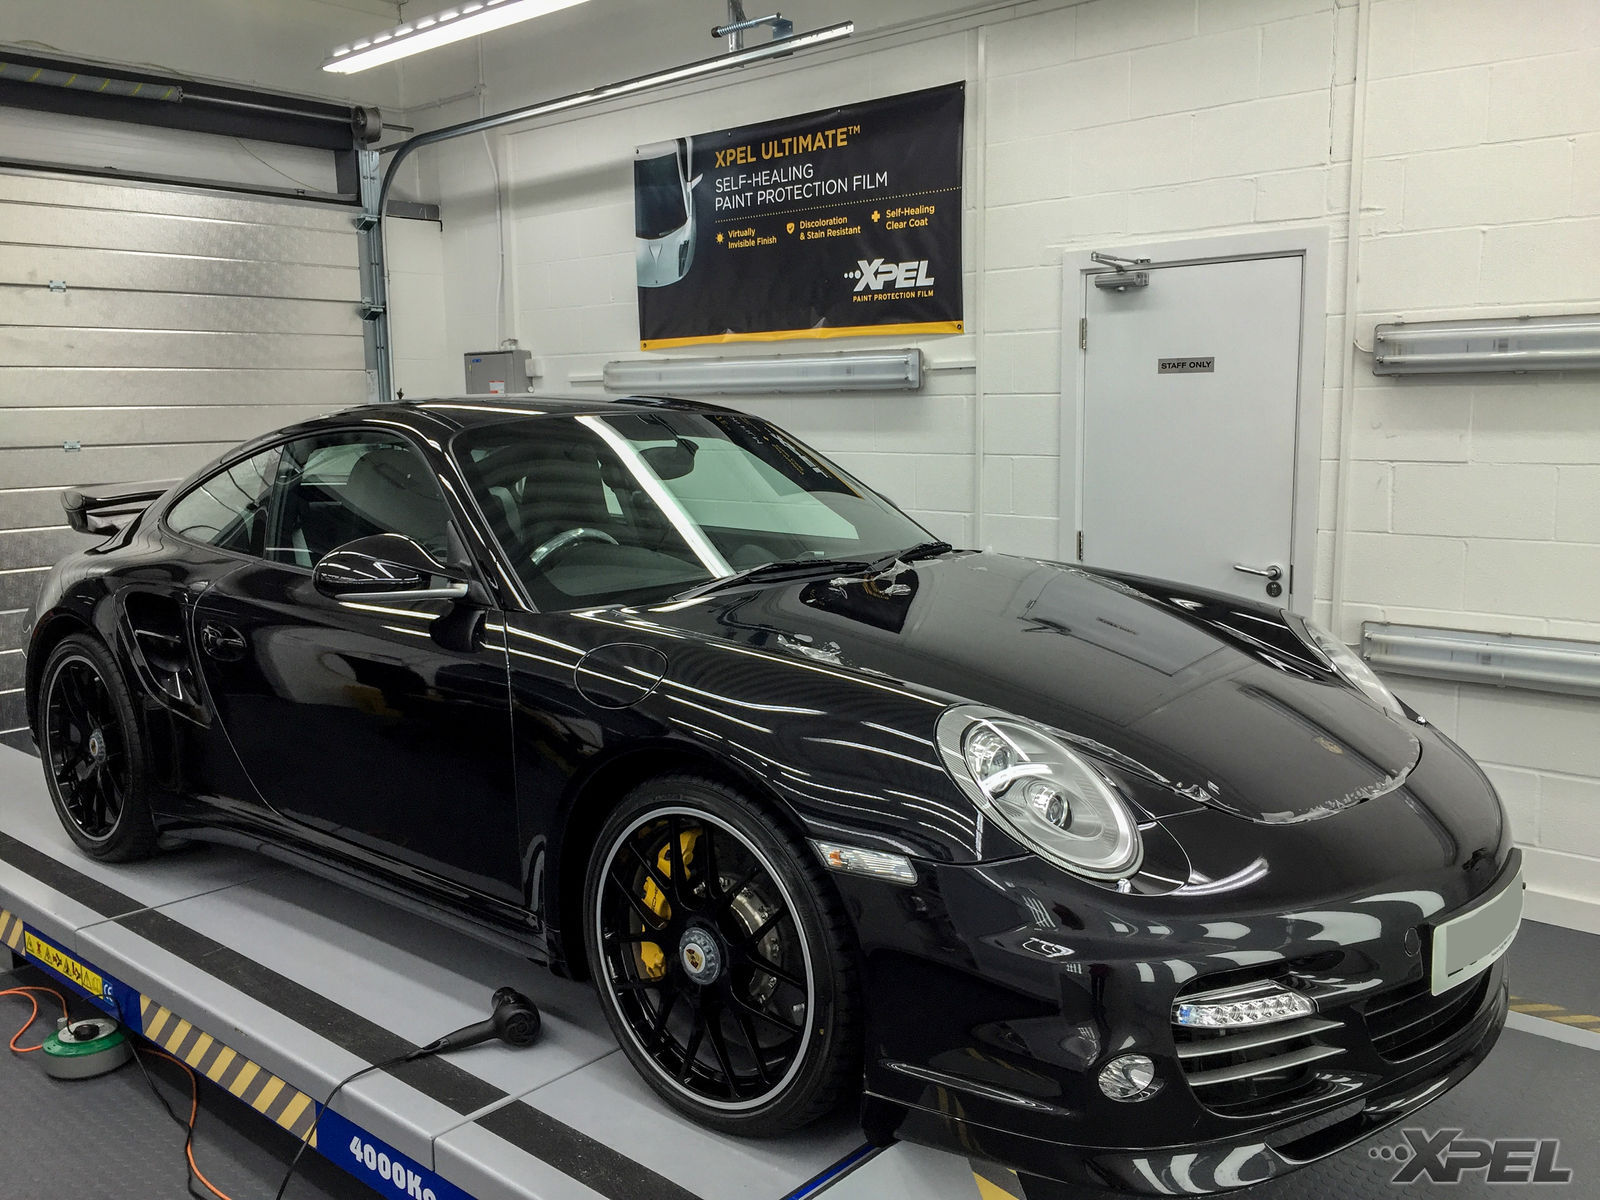   Beautiful car at our shop for XPEL ULTIMATE